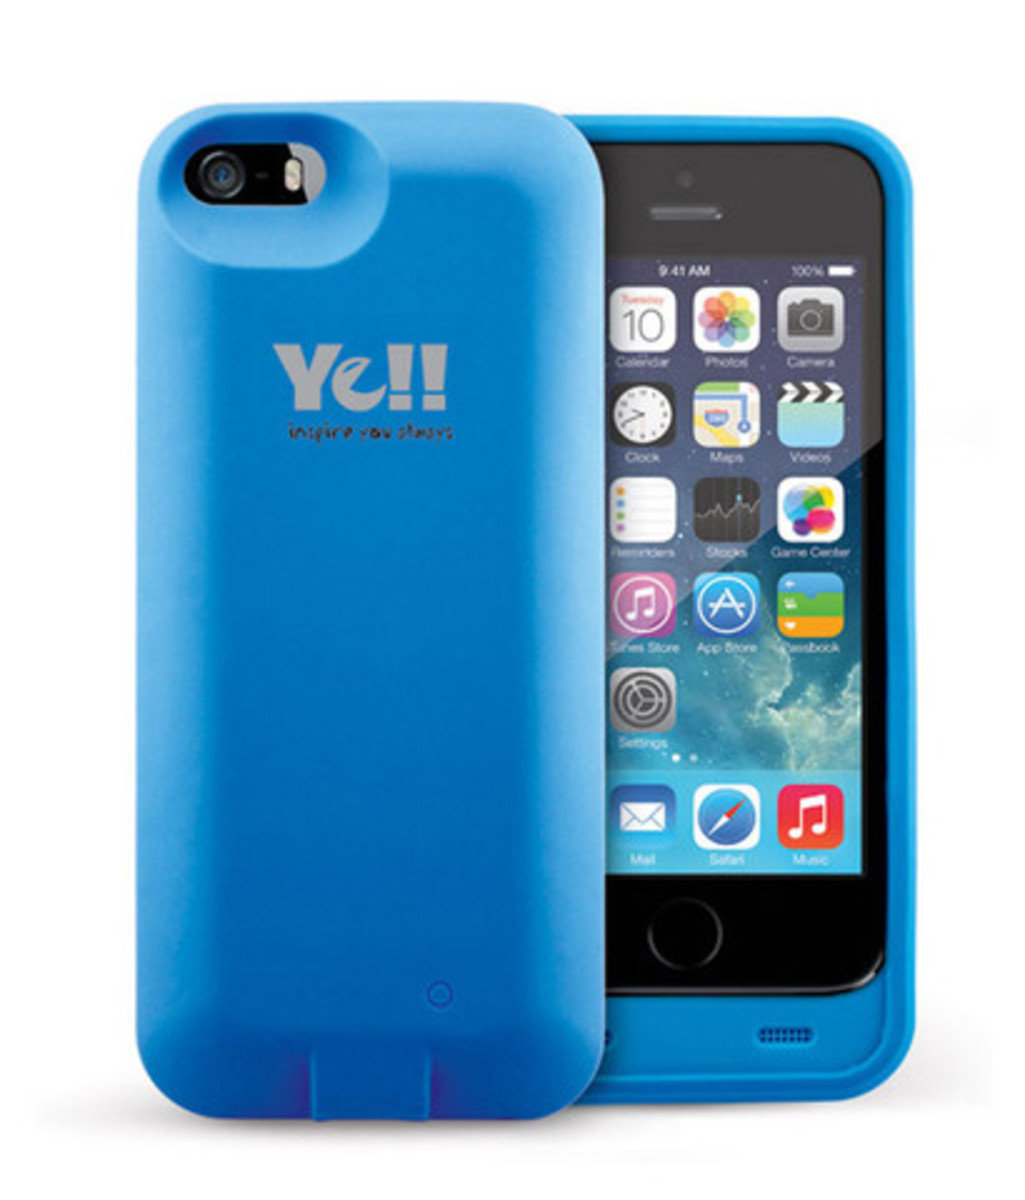 BPP5 - iPhone 5 / 5s 2000mAh 充電套 (Blue)